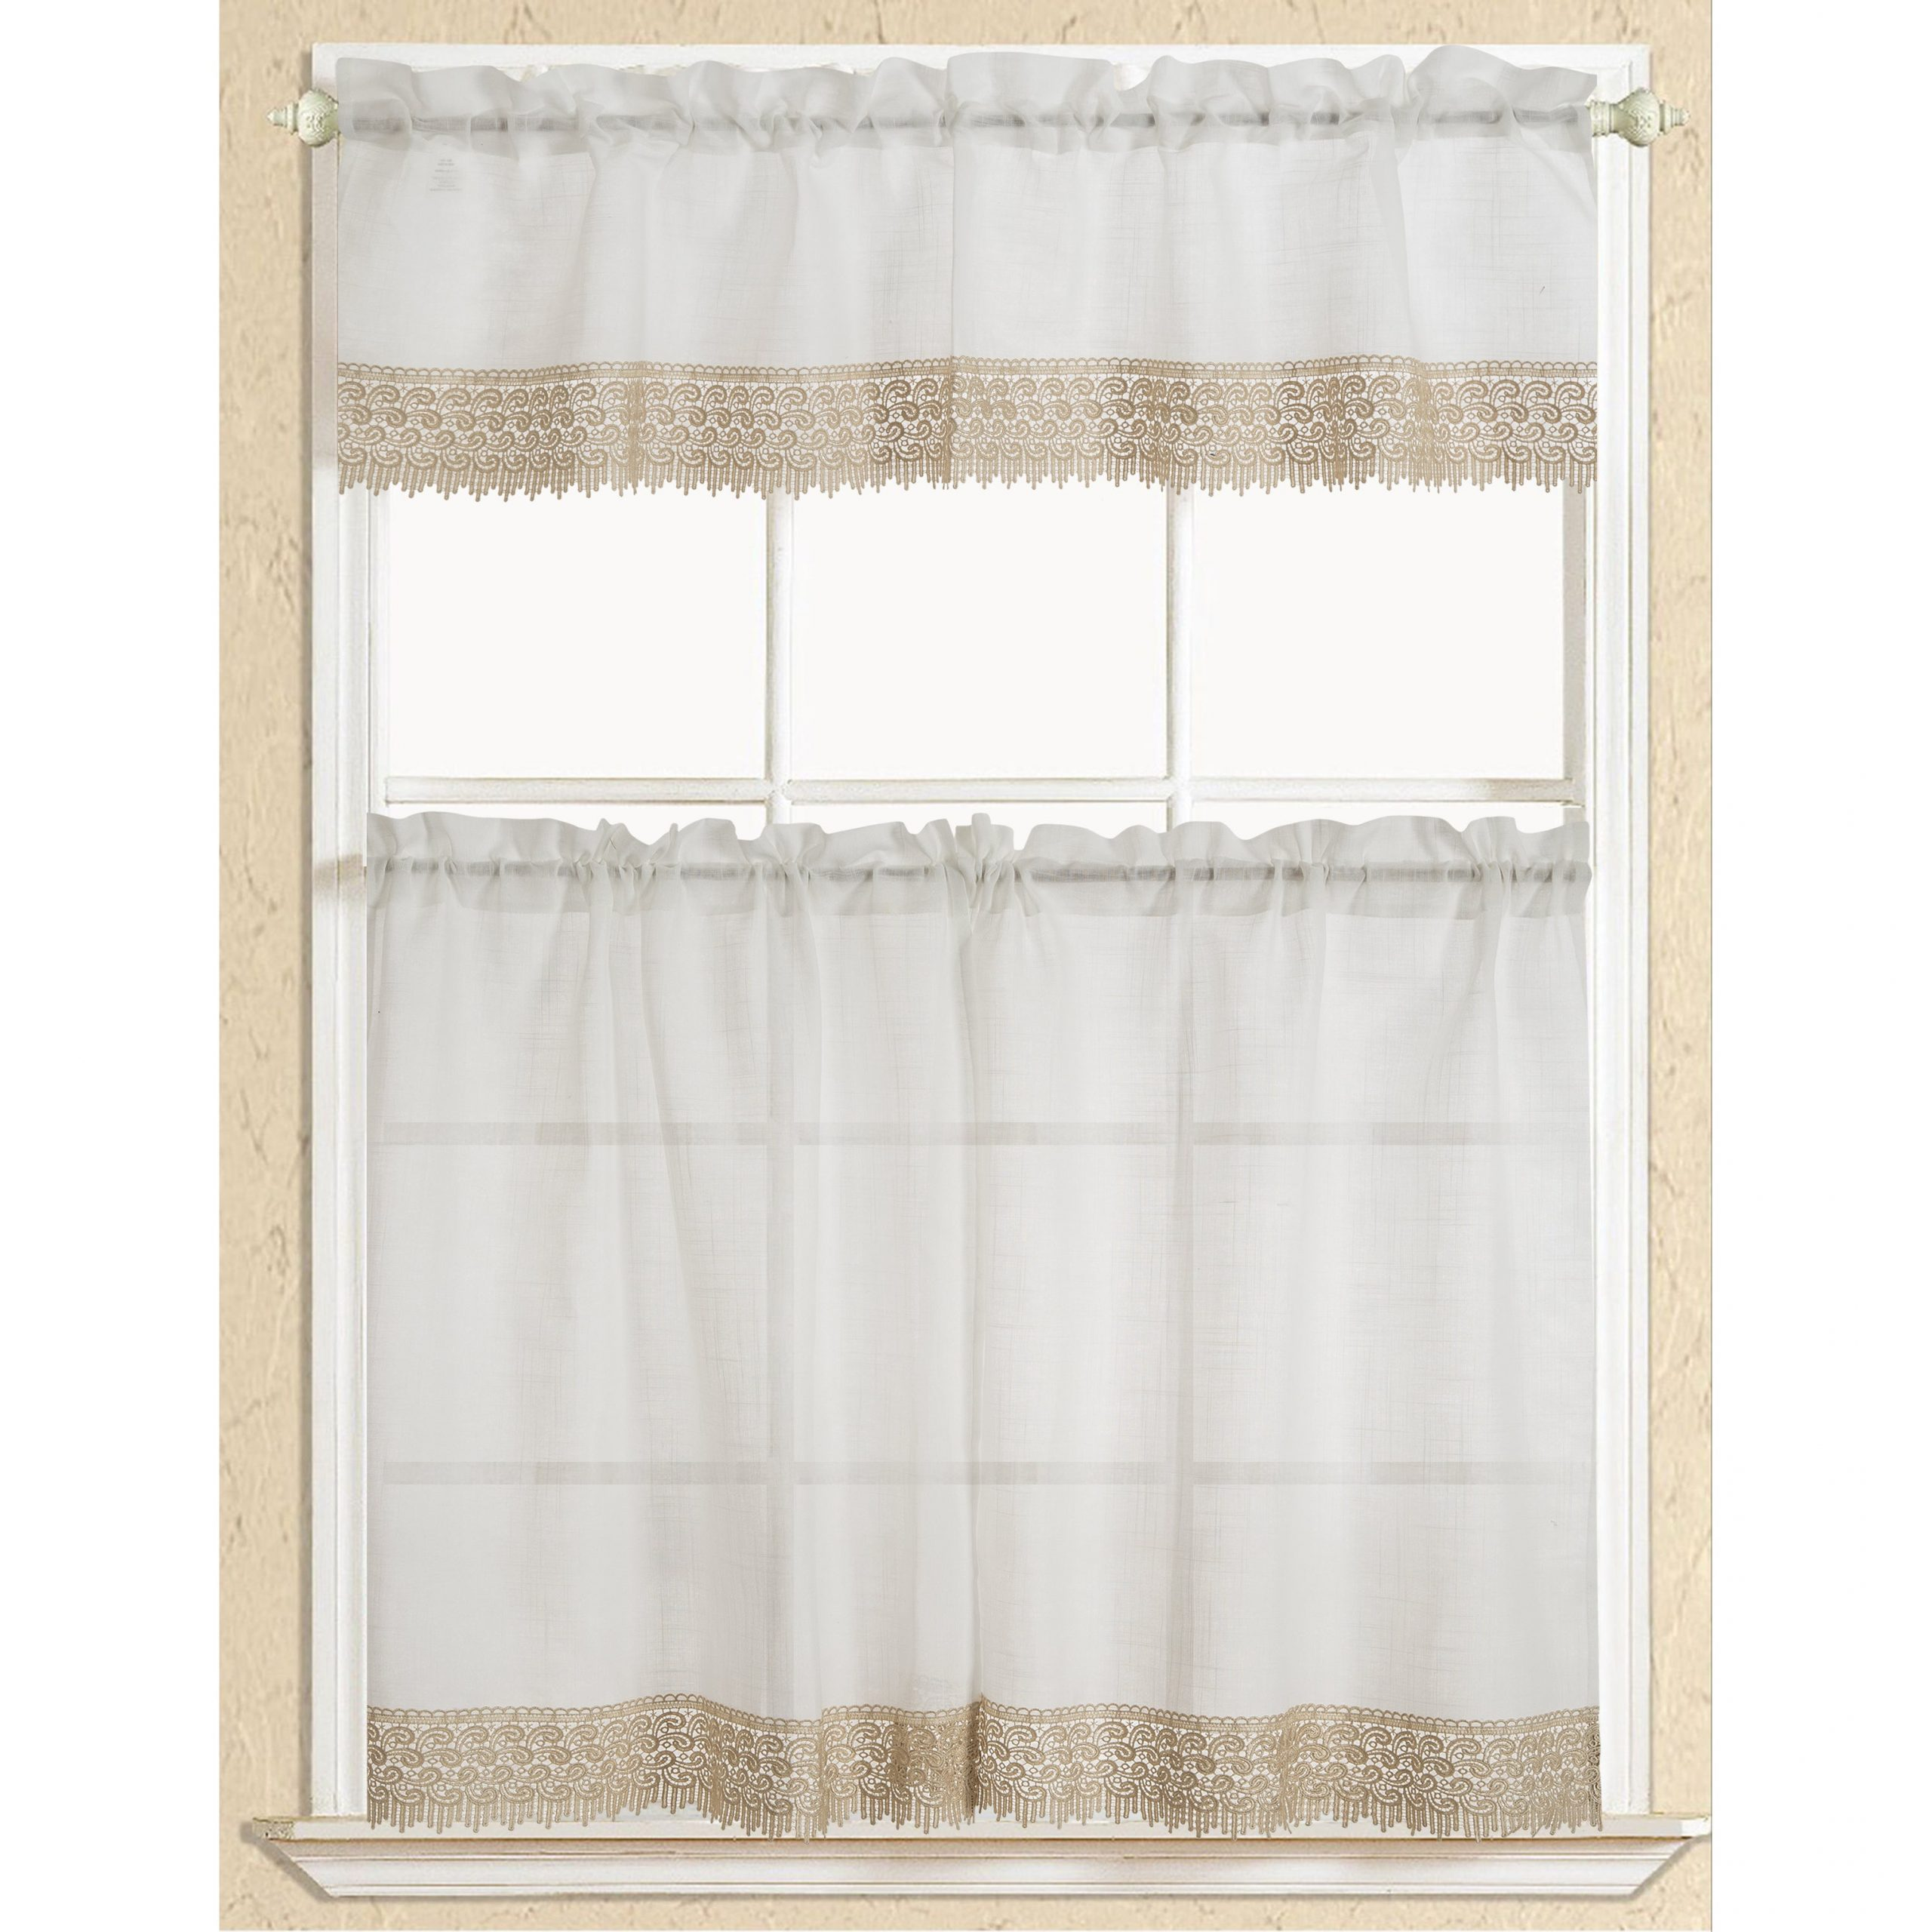 Rt Designers Collection Evie Macrame Border Tier And Valance Kitchen  Curtain Set Within Abby Embroidered 5 Piece Curtain Tier And Swag Sets (Gallery 6 of 20)